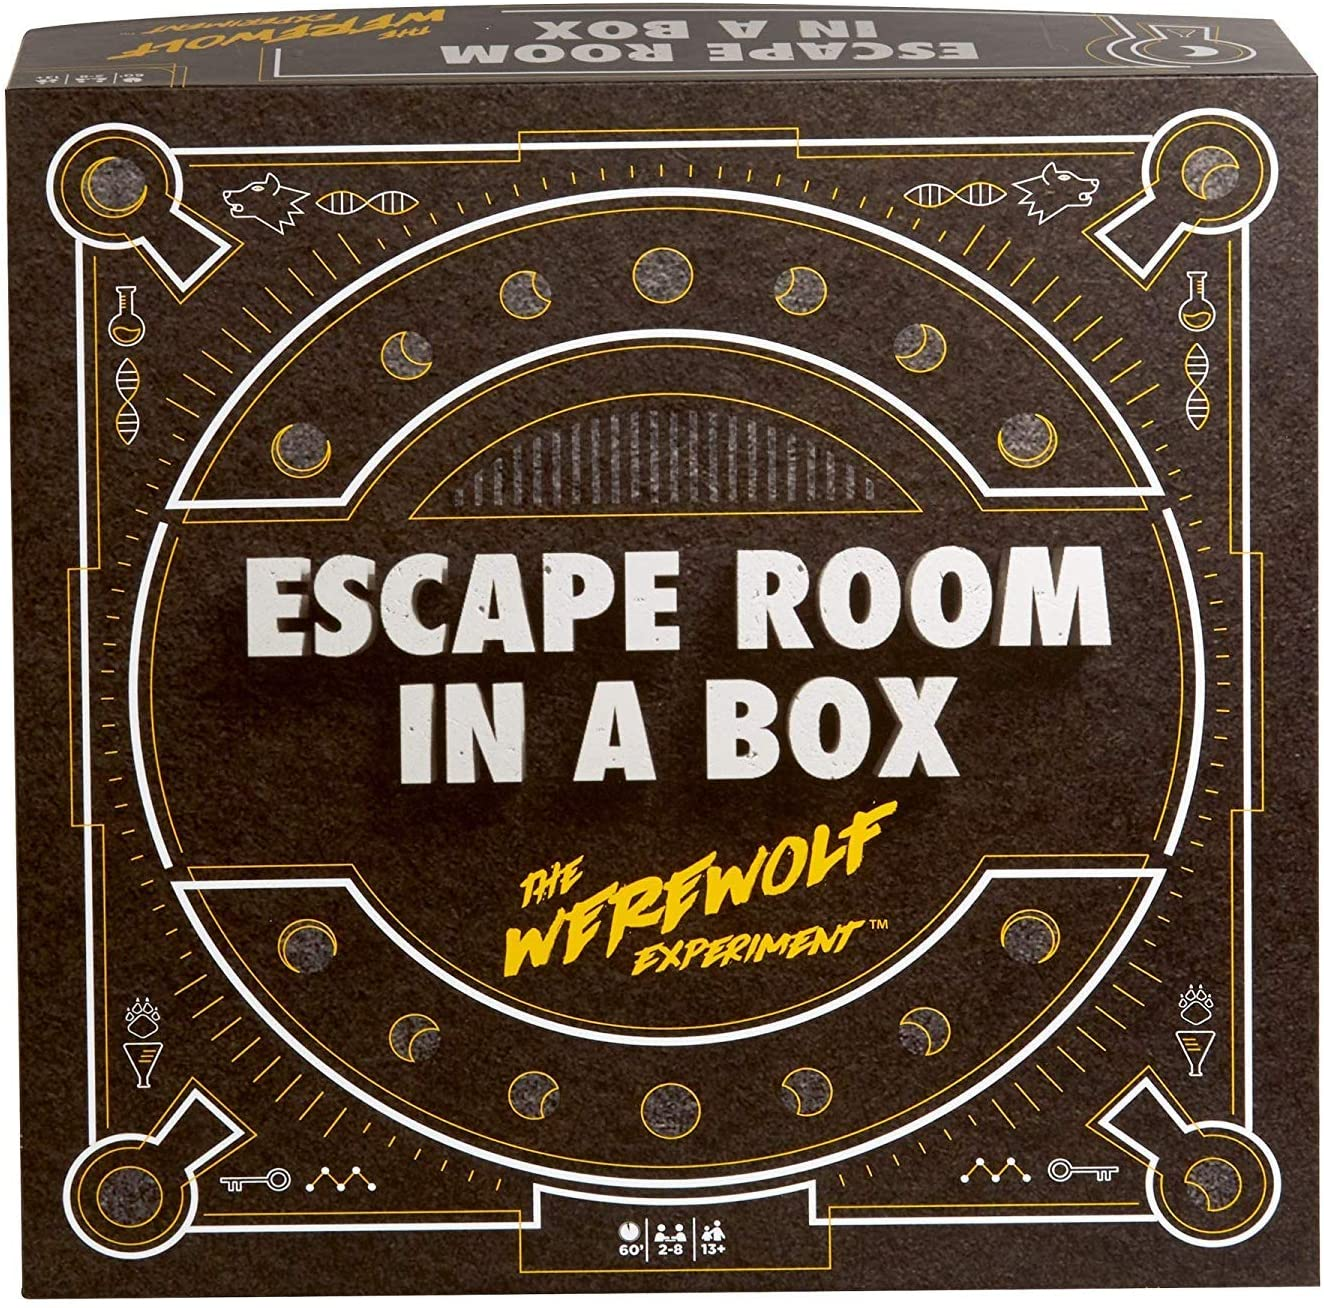 Escape room in a box for game nights for adults